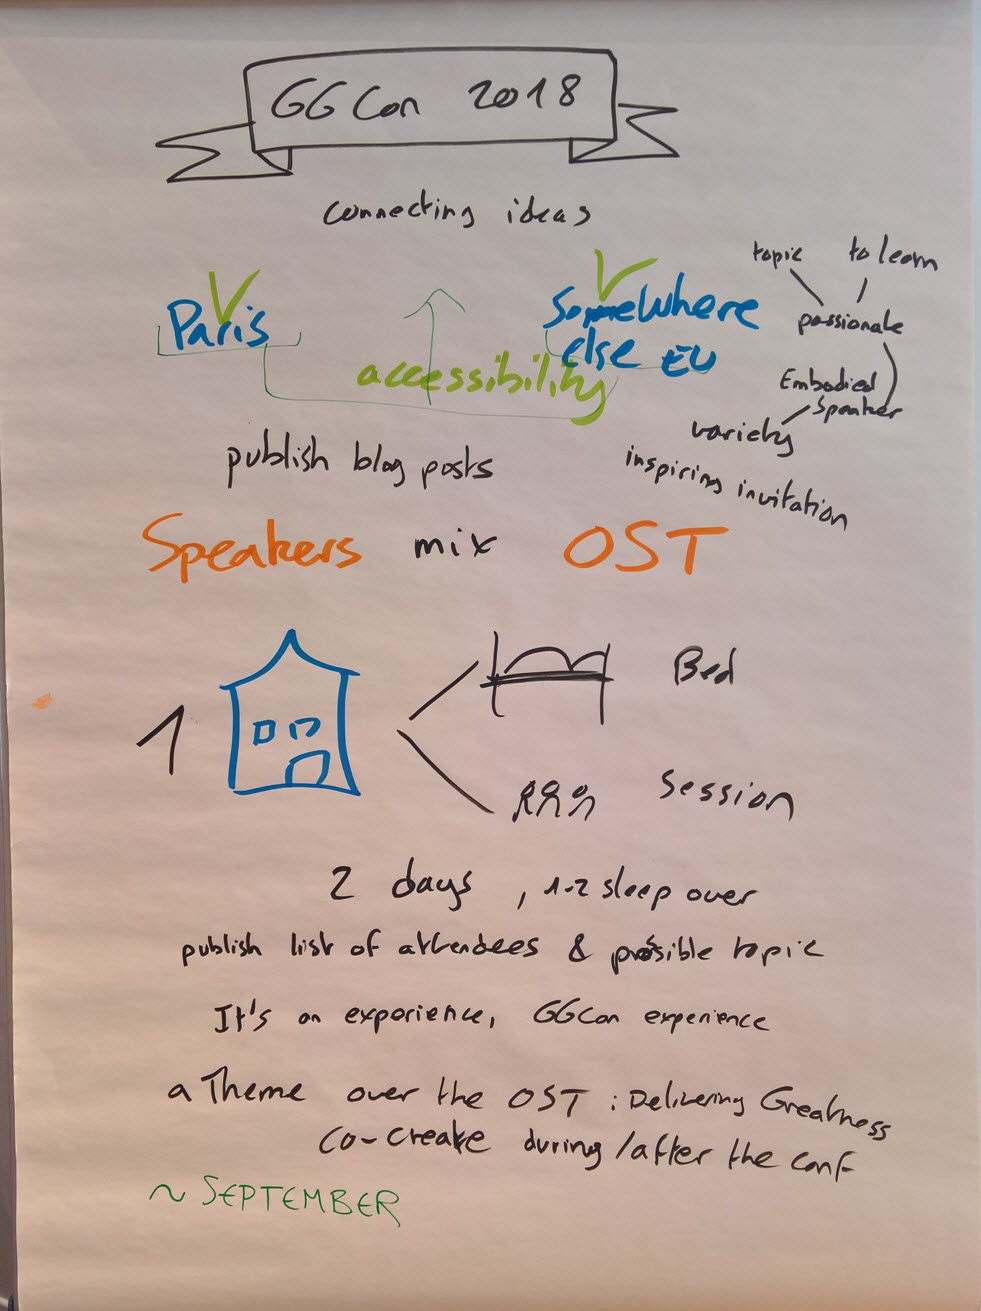 GGcon Flipchart 23 - 2018 edition.jpg